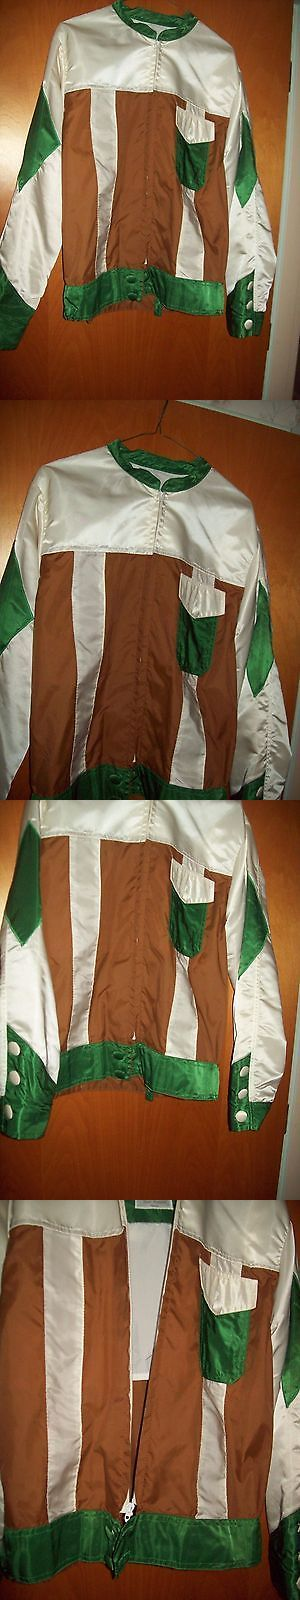 Other Driving Equipment 13376: Vintage Equestrian Roadster Racing Silk Driving Jacket Mediam Size -> BUY IT NOW ONLY: $99.99 on eBay!